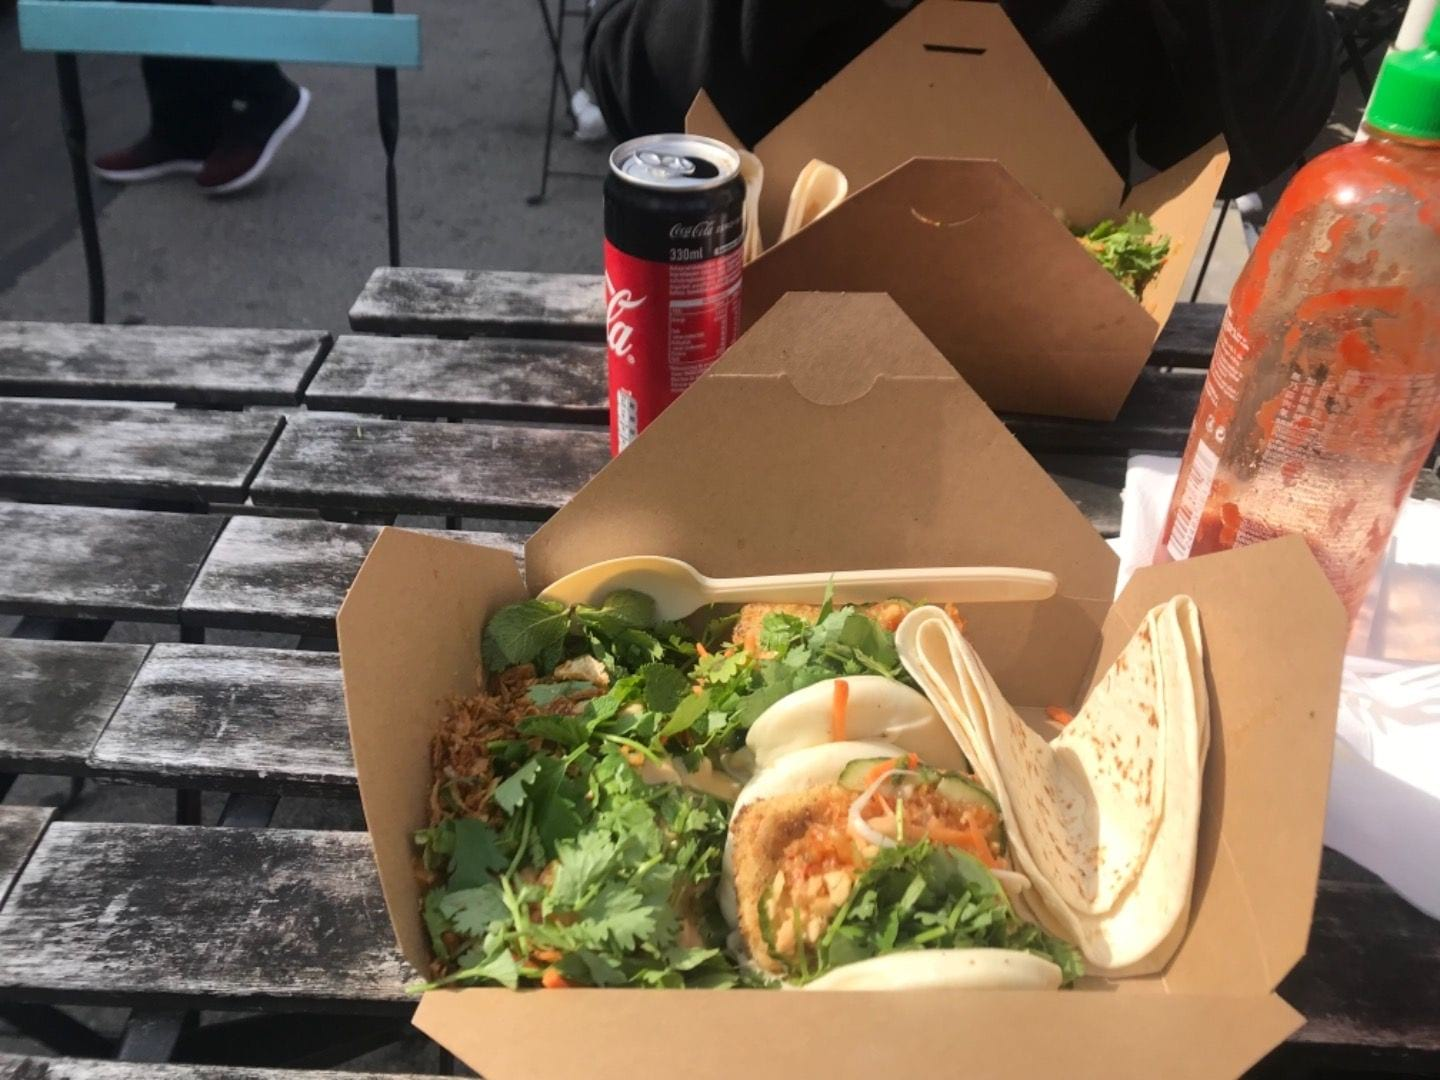 Photo from JINX Food Truck by Malin S.